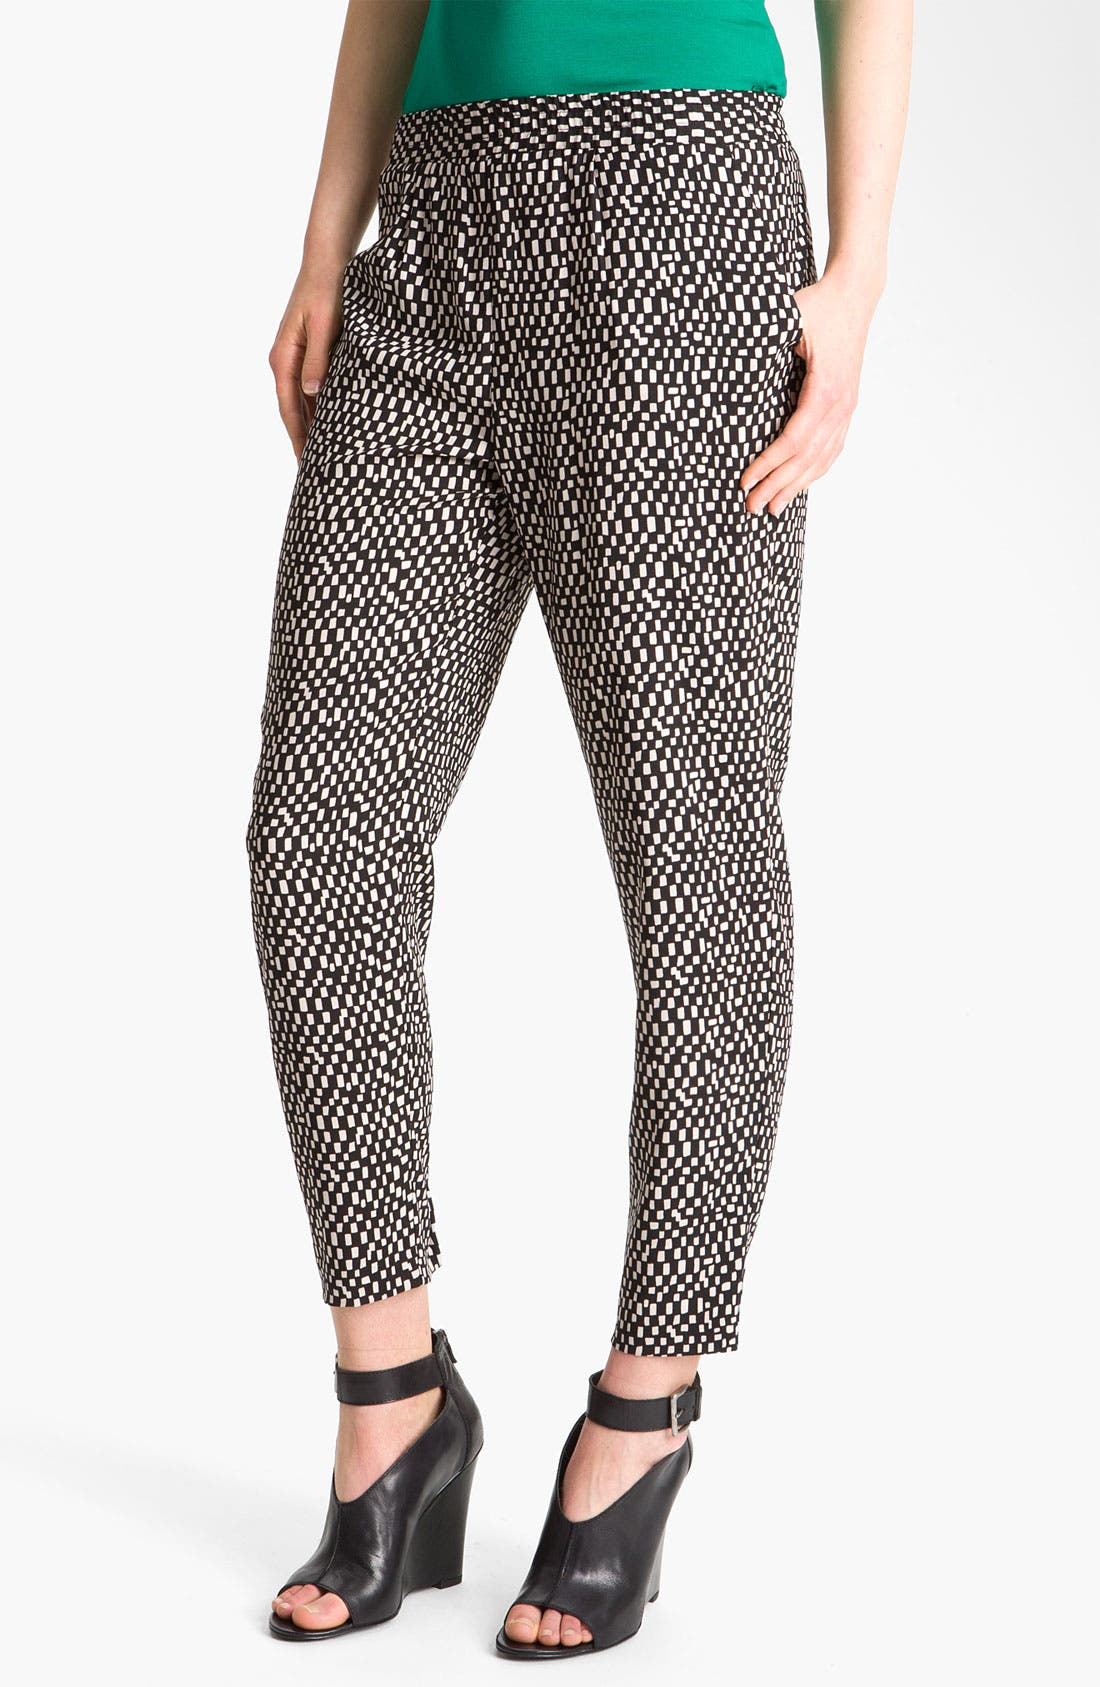 Alternate Image 1 Selected - Vince Camuto 'Spaced Tiles' Pegged Pants